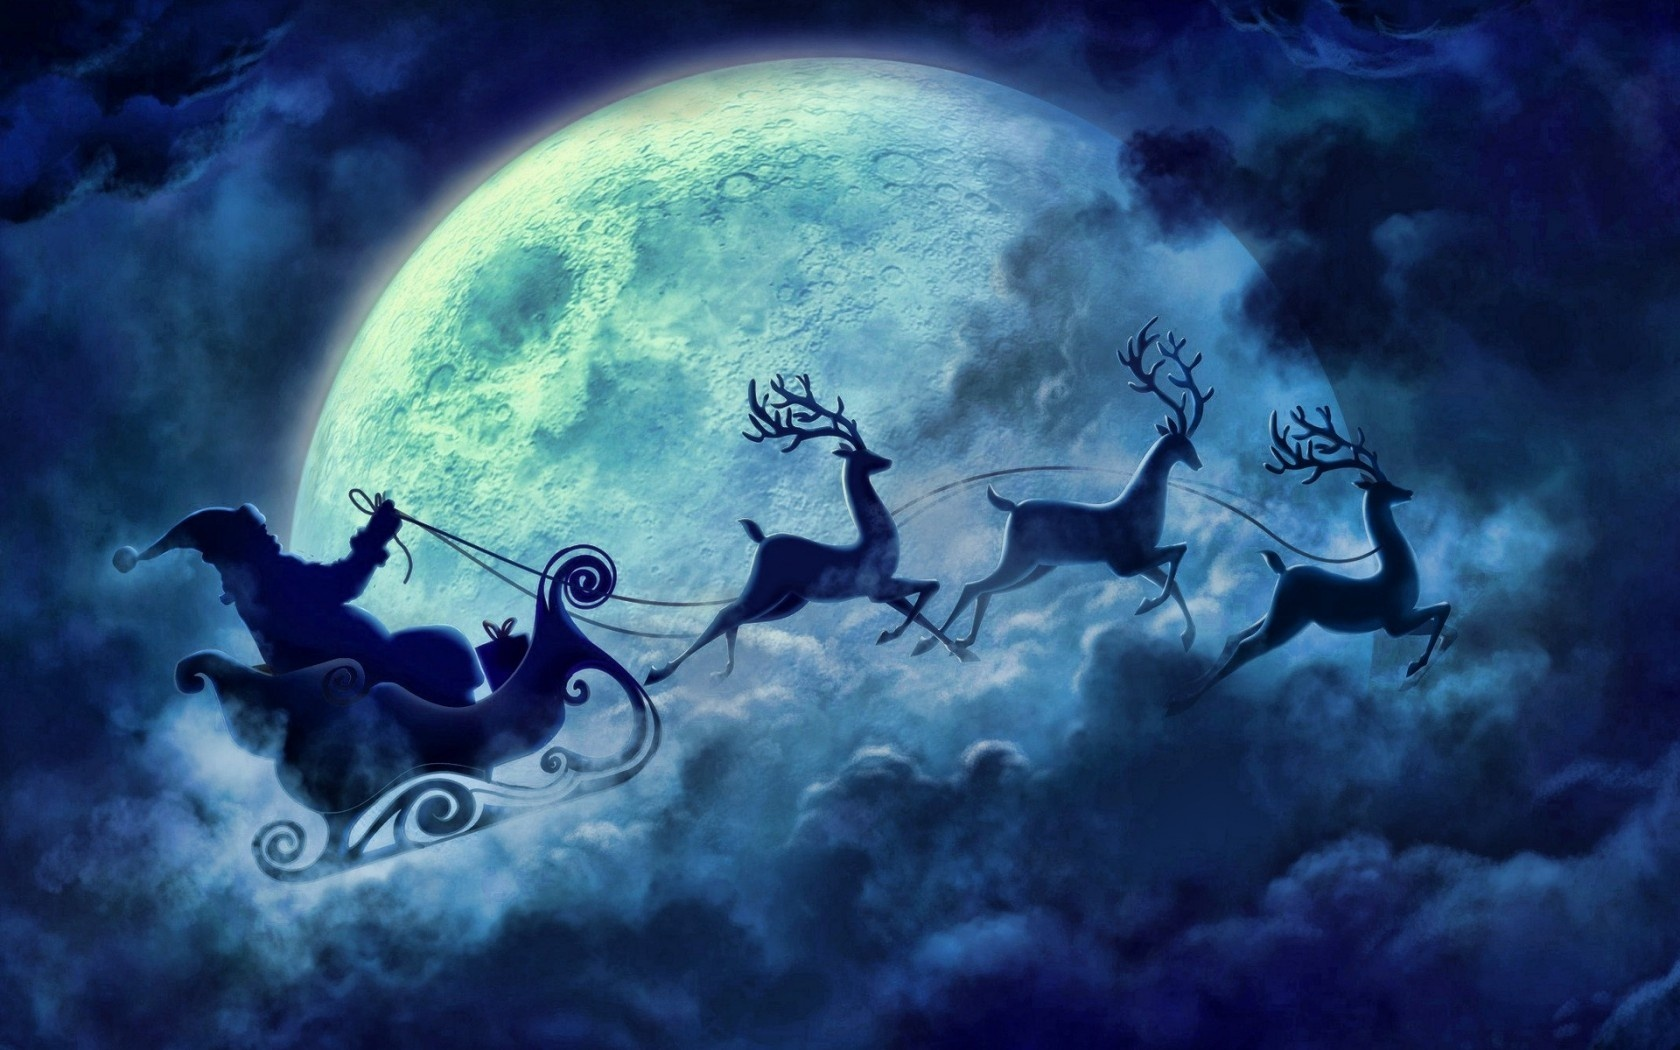 Wallpaper Of The Day Merry Christmas   Common Sense Evaluation 1680x1050